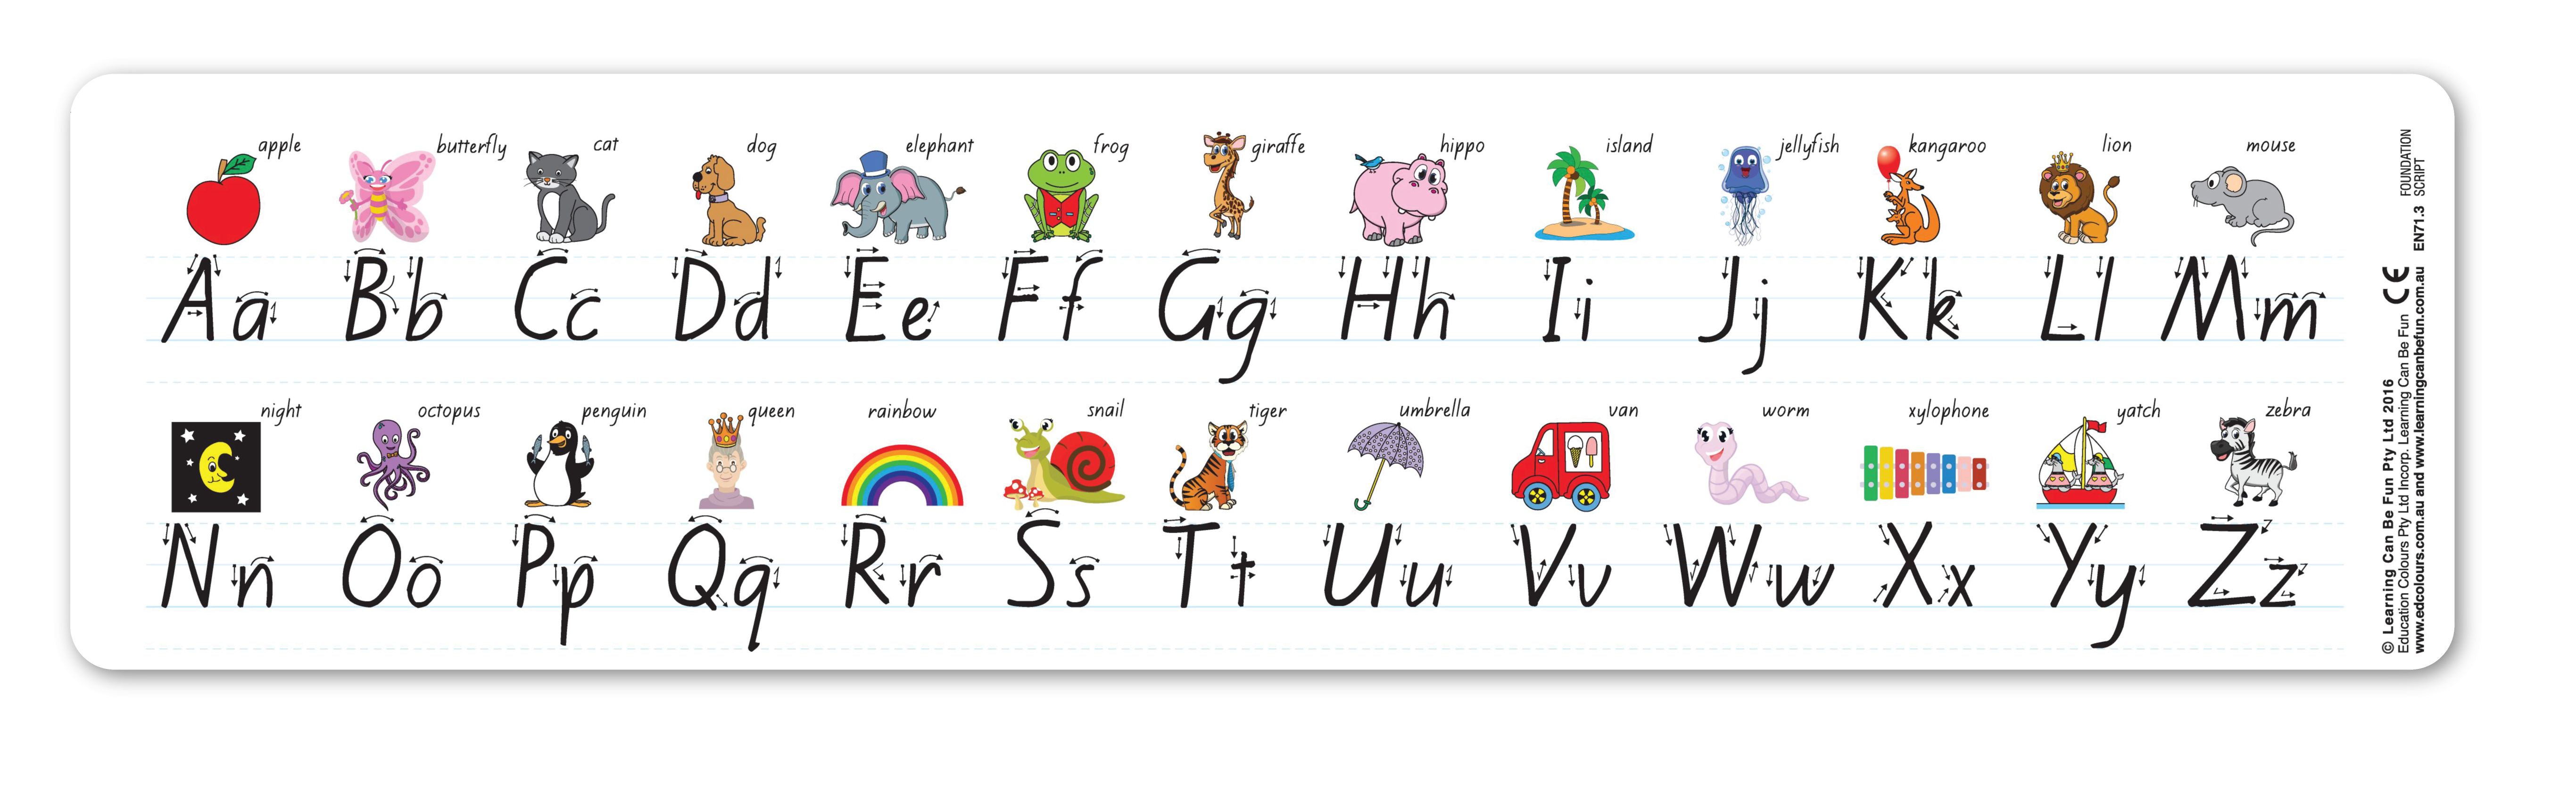 Pin By Creative Classrooms On Literacy Ideas Charts For Kids Alphabet Phonics